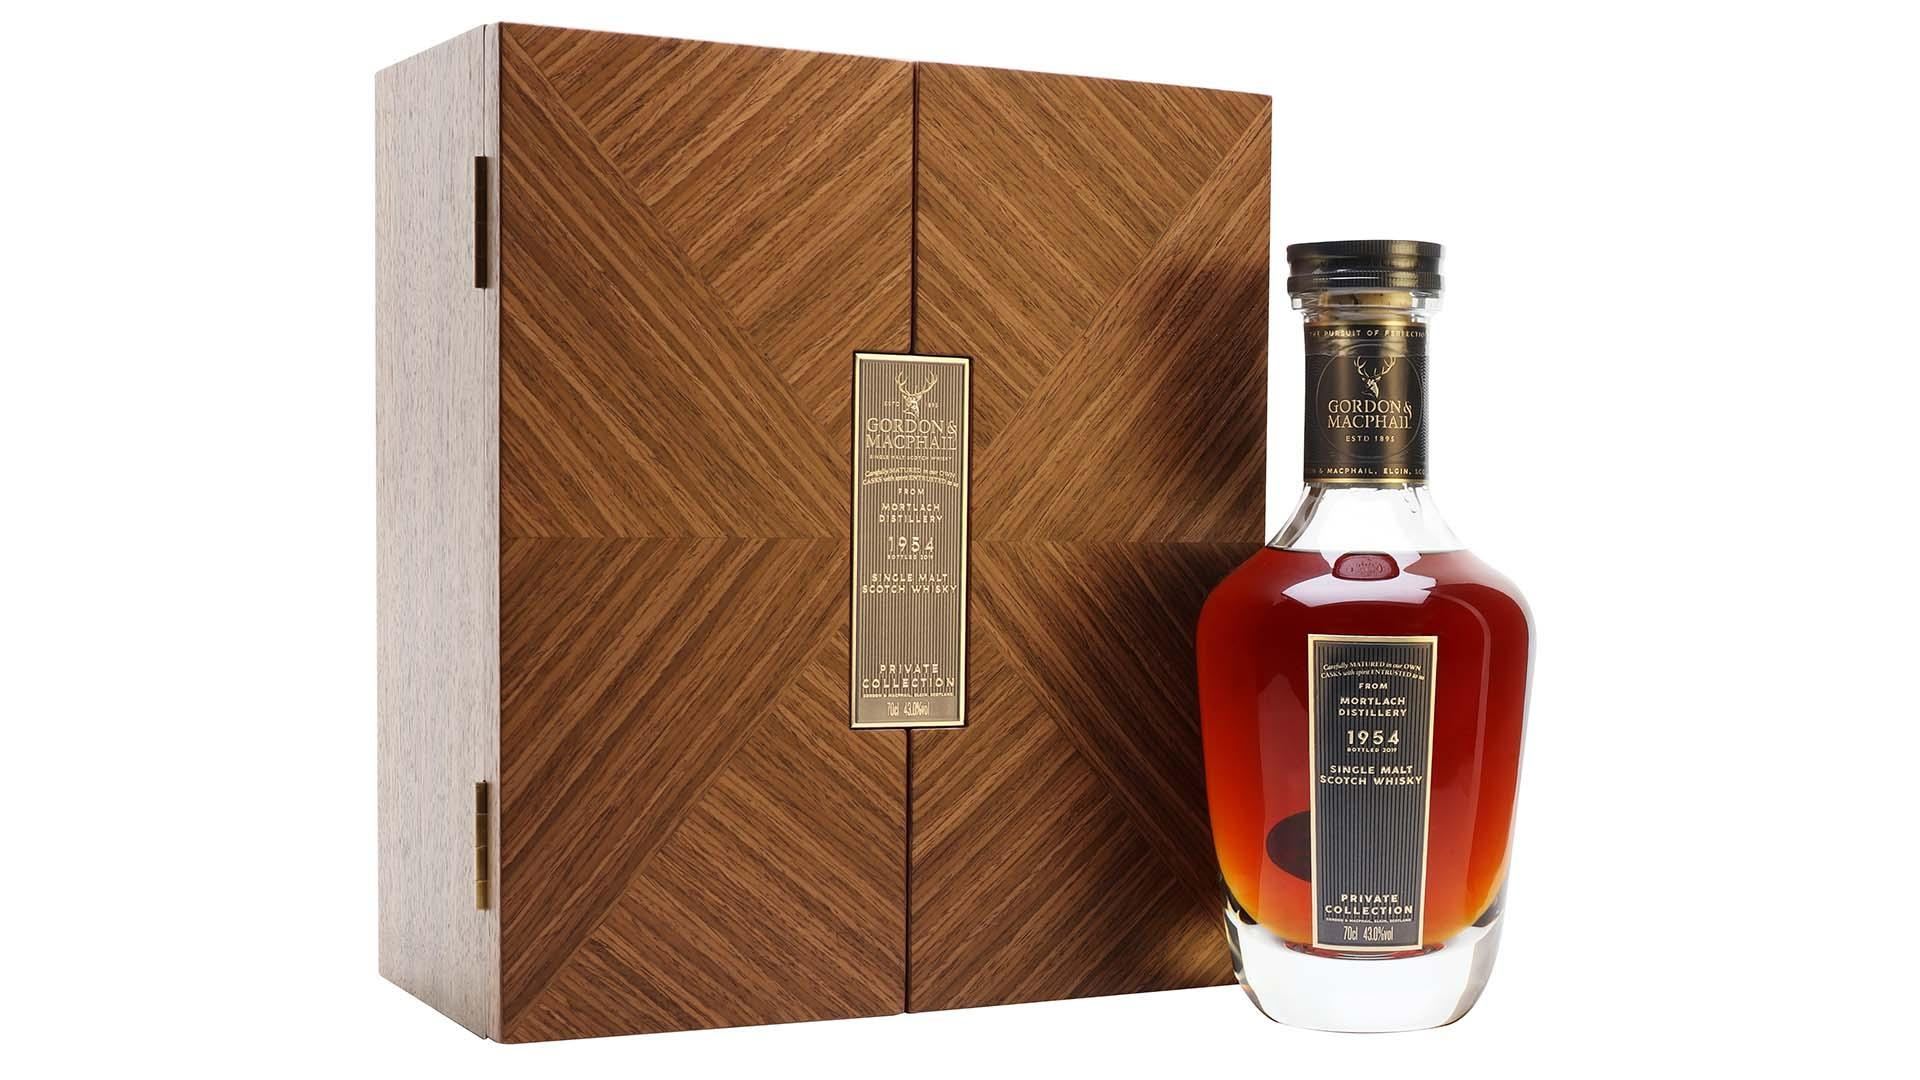 Mortlach 1954 | 65 Year Old Private Collection